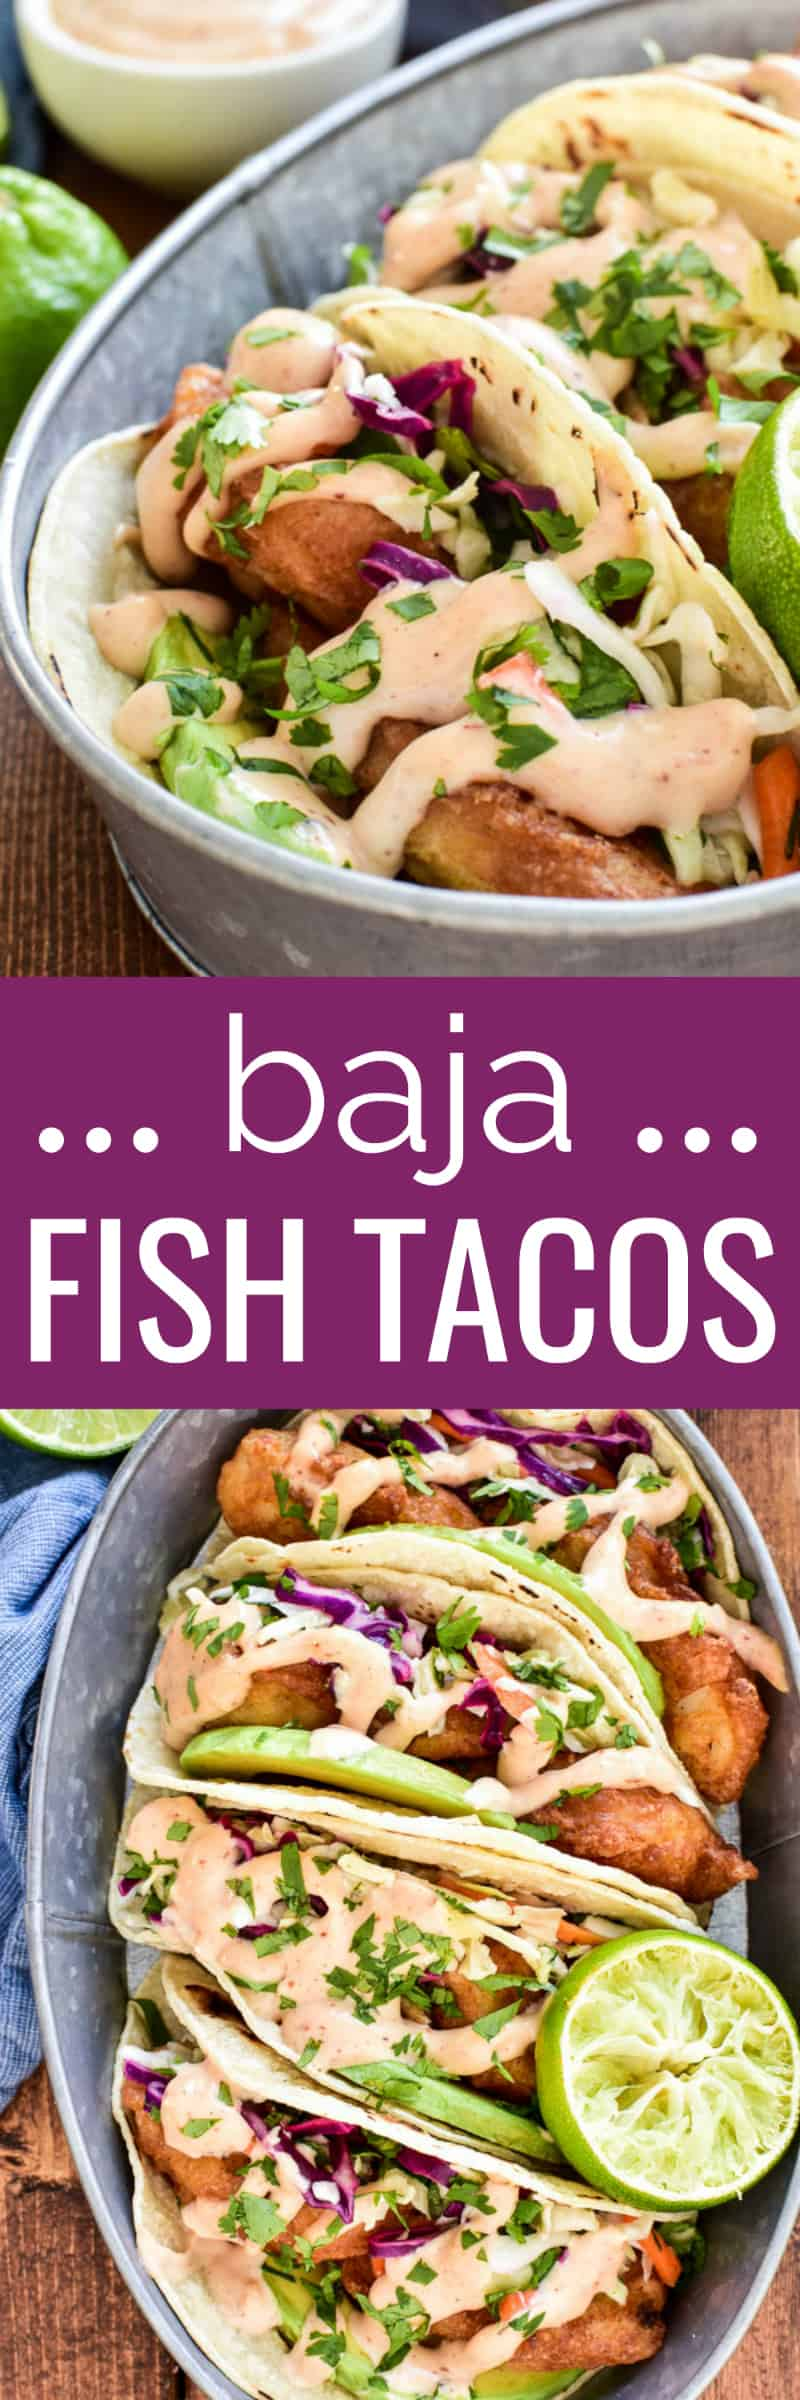 Collage image of Baja Fish Tacos